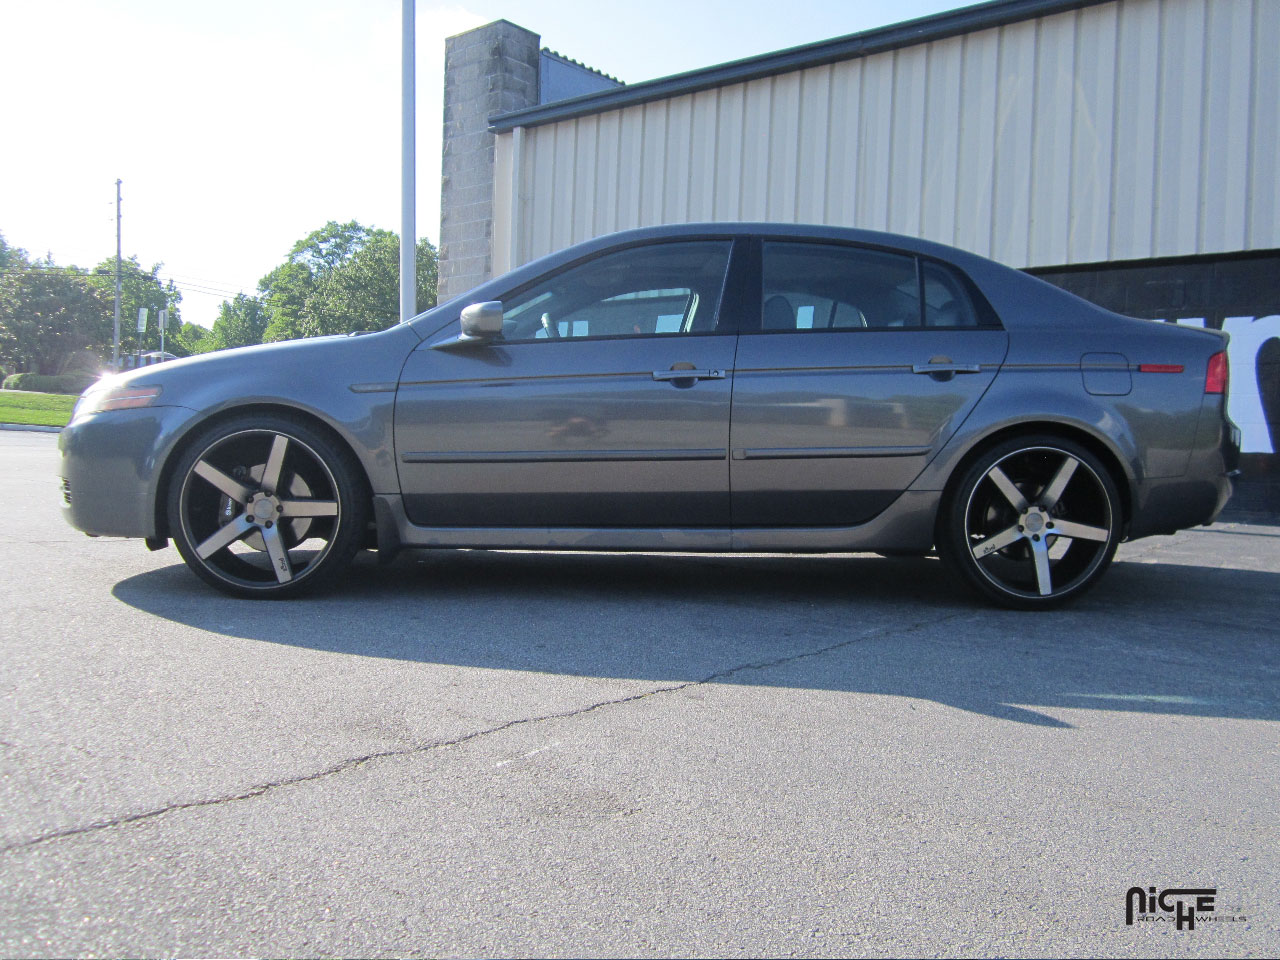 Gallery Niche Wheels - Rims for acura tl